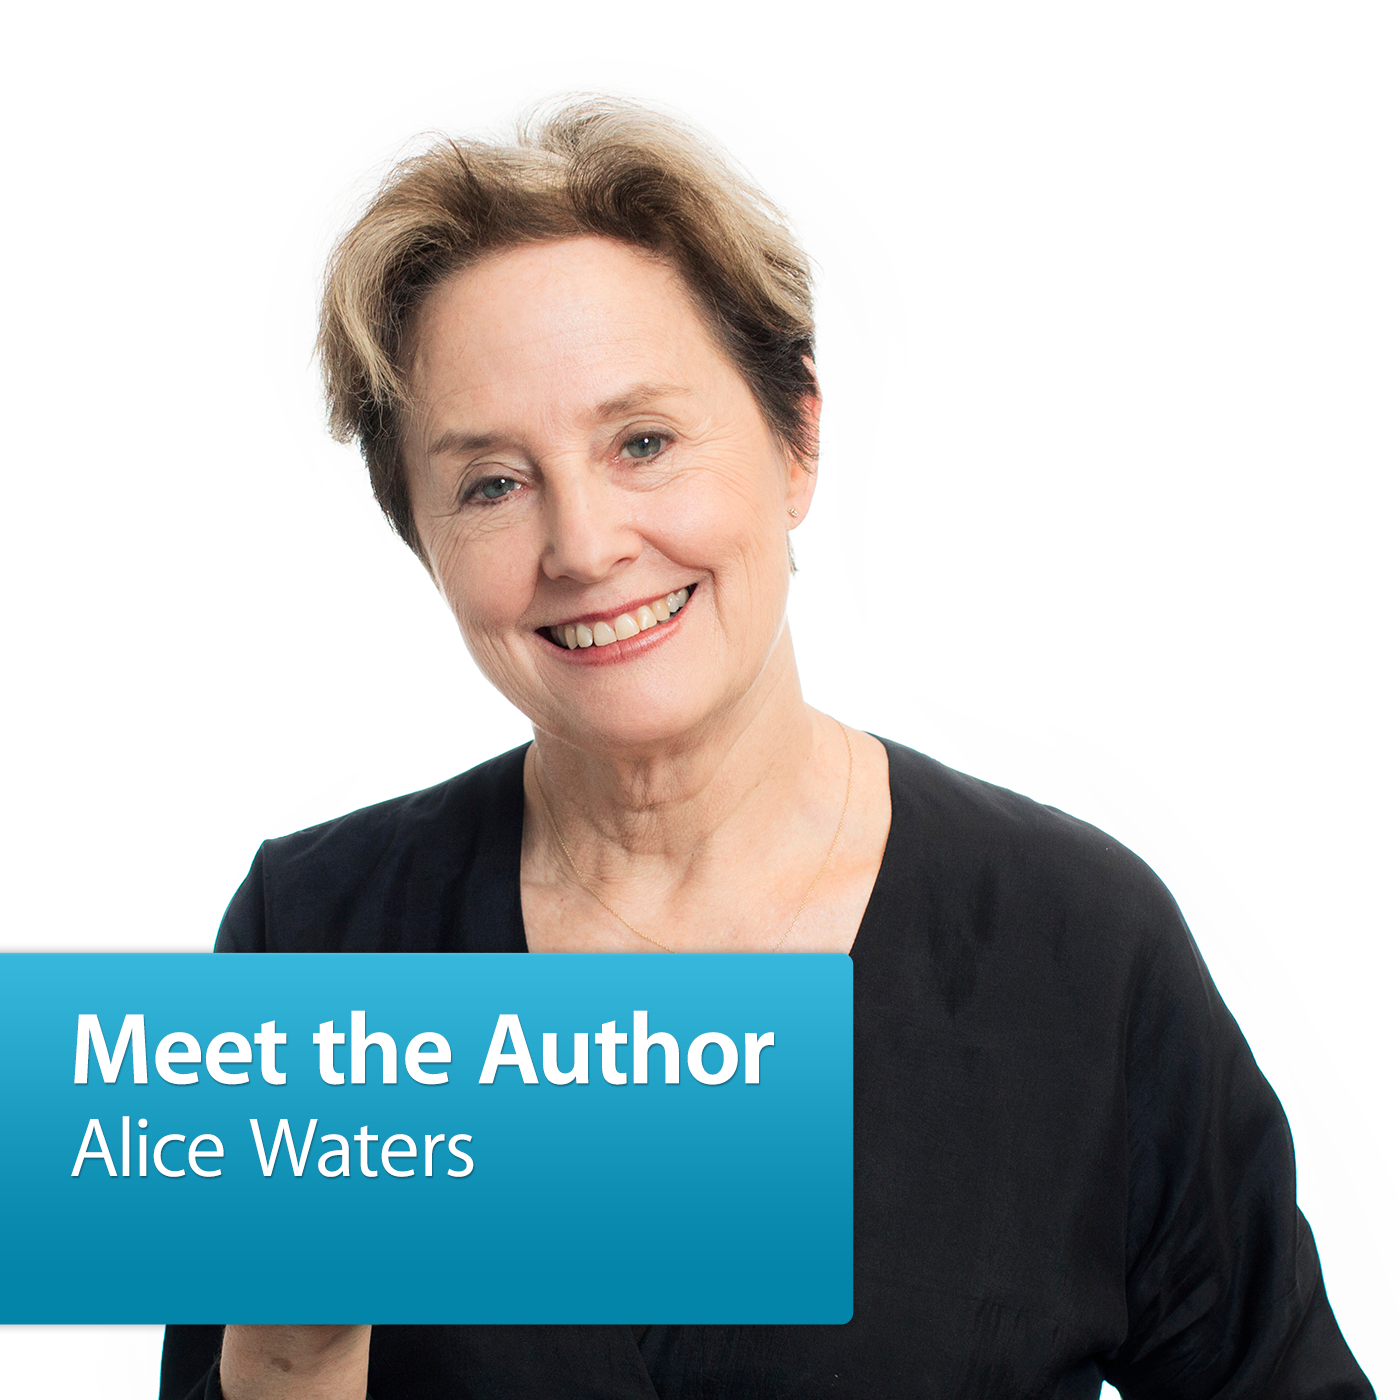 Alice Waters: Meet the Author